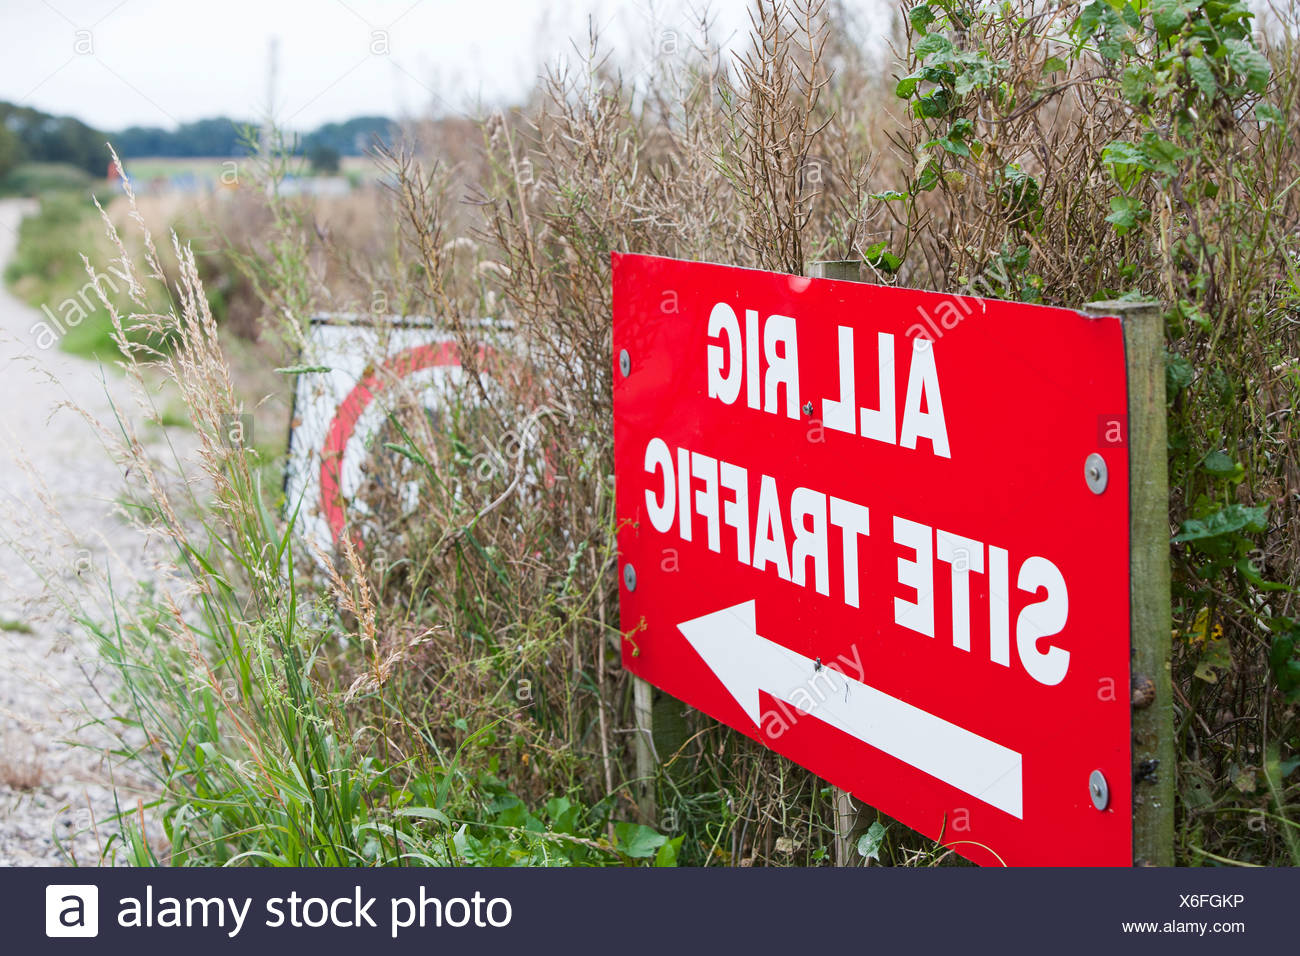 A test drilling site for shale gas at Preese Hall Farm near Blackpool, Lancashire, UK. - Stock Image